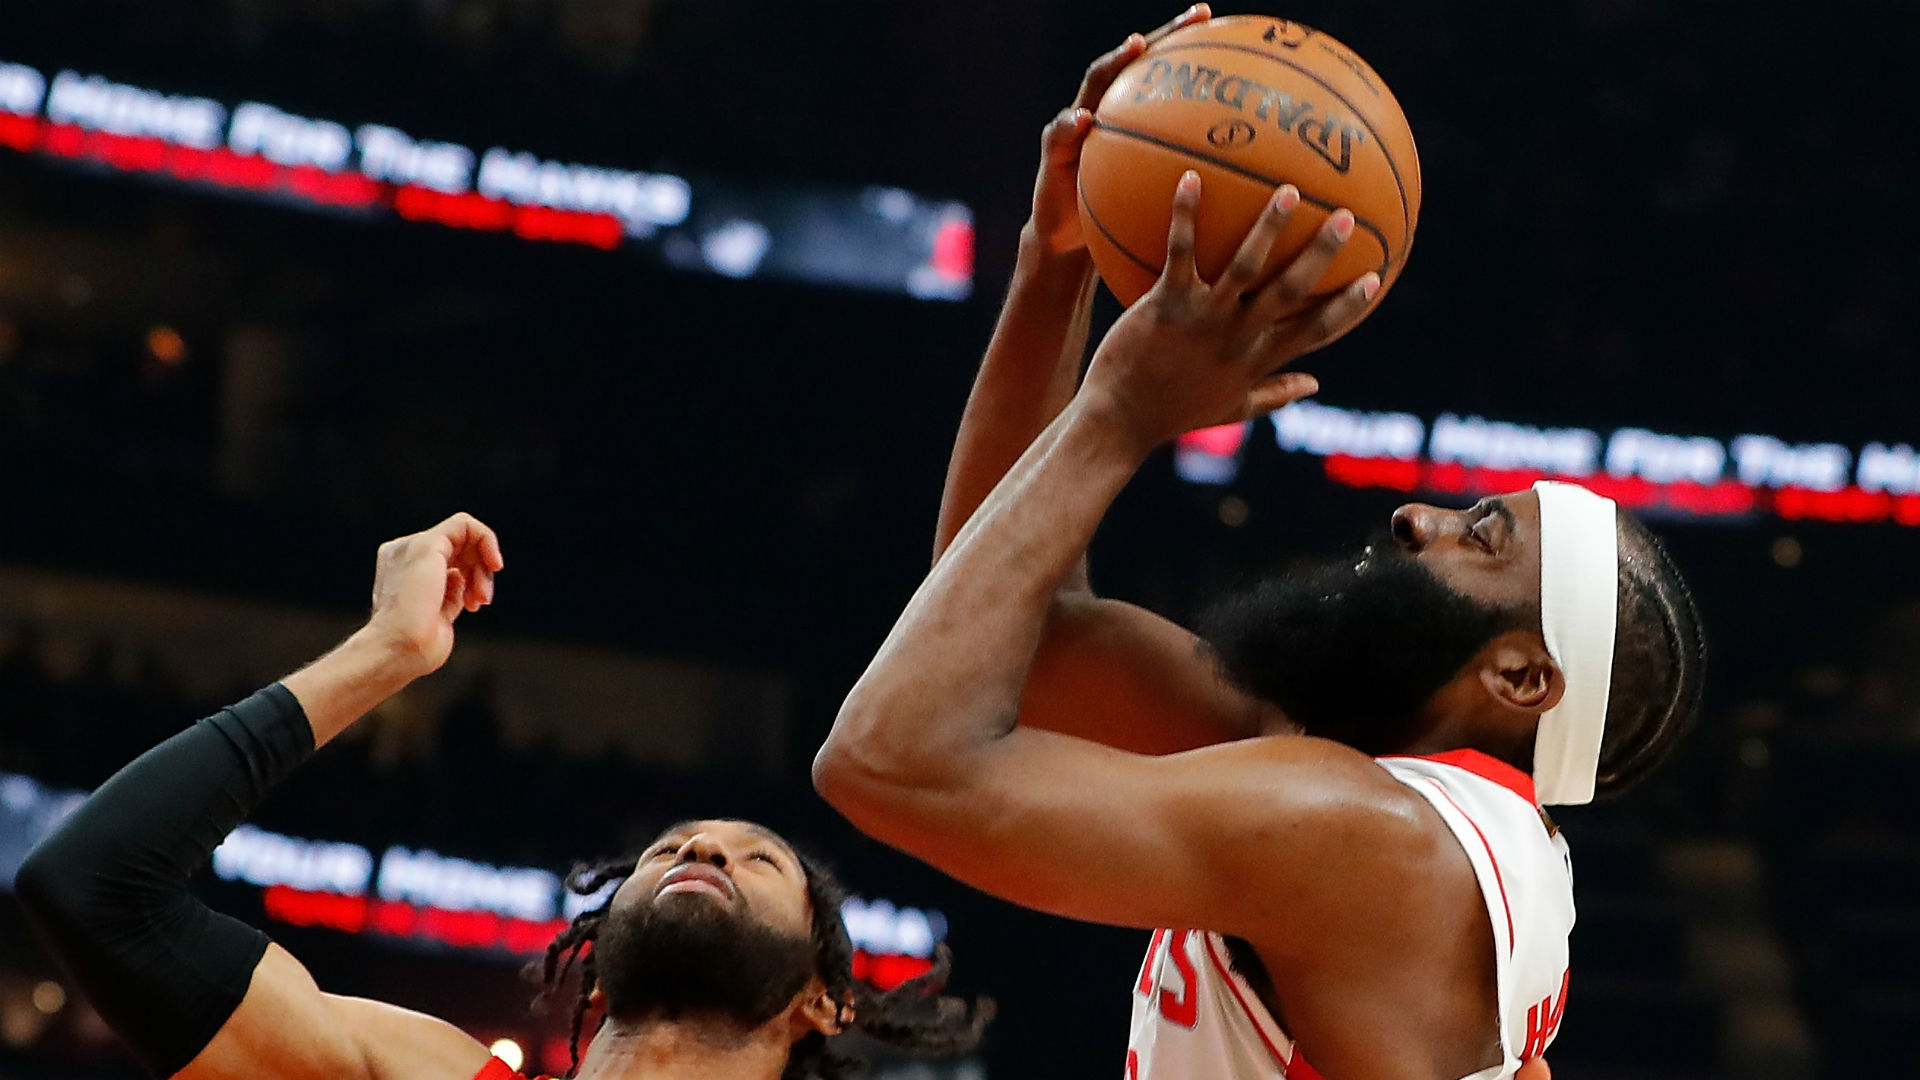 A 32-point haul in the Houston Rockets' comprehensive win over the Minnesota Timberwolves brought up a major milestone for James Harden.